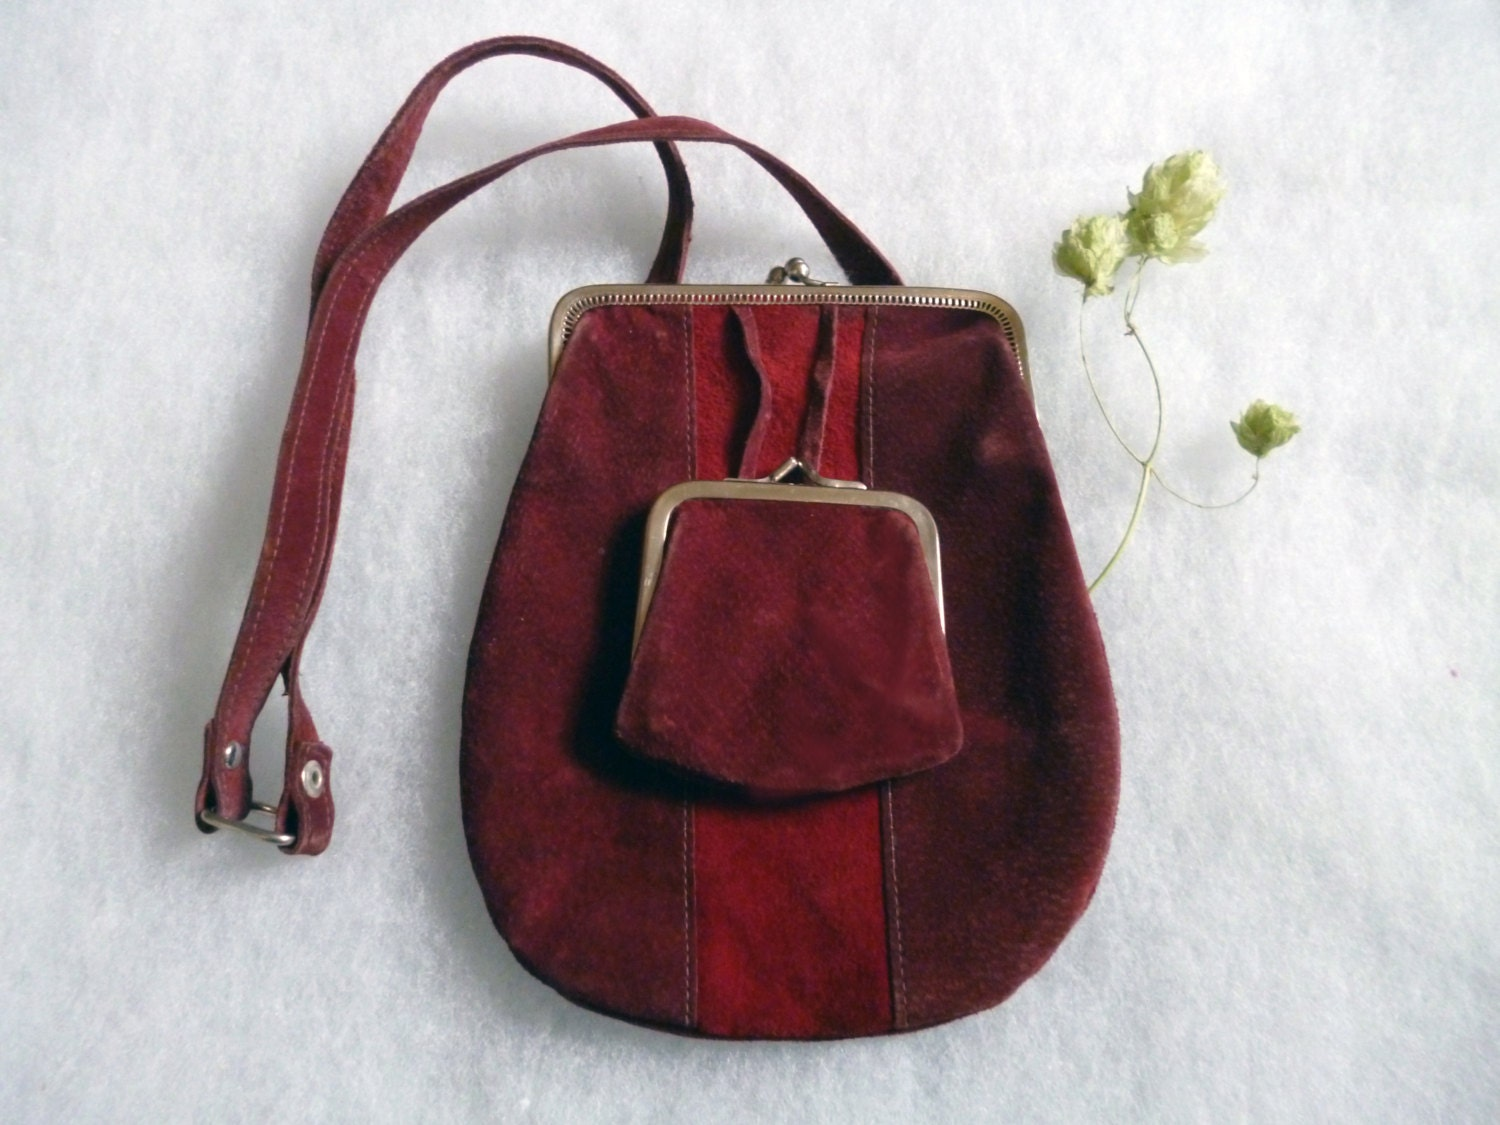 Clutches Evening Bags Crossbody Hobo Shoulder Top Leather Suede Purse Small Burgundy Maroon Red Bag Clutch Long Strap Handheld Handbag Theatre